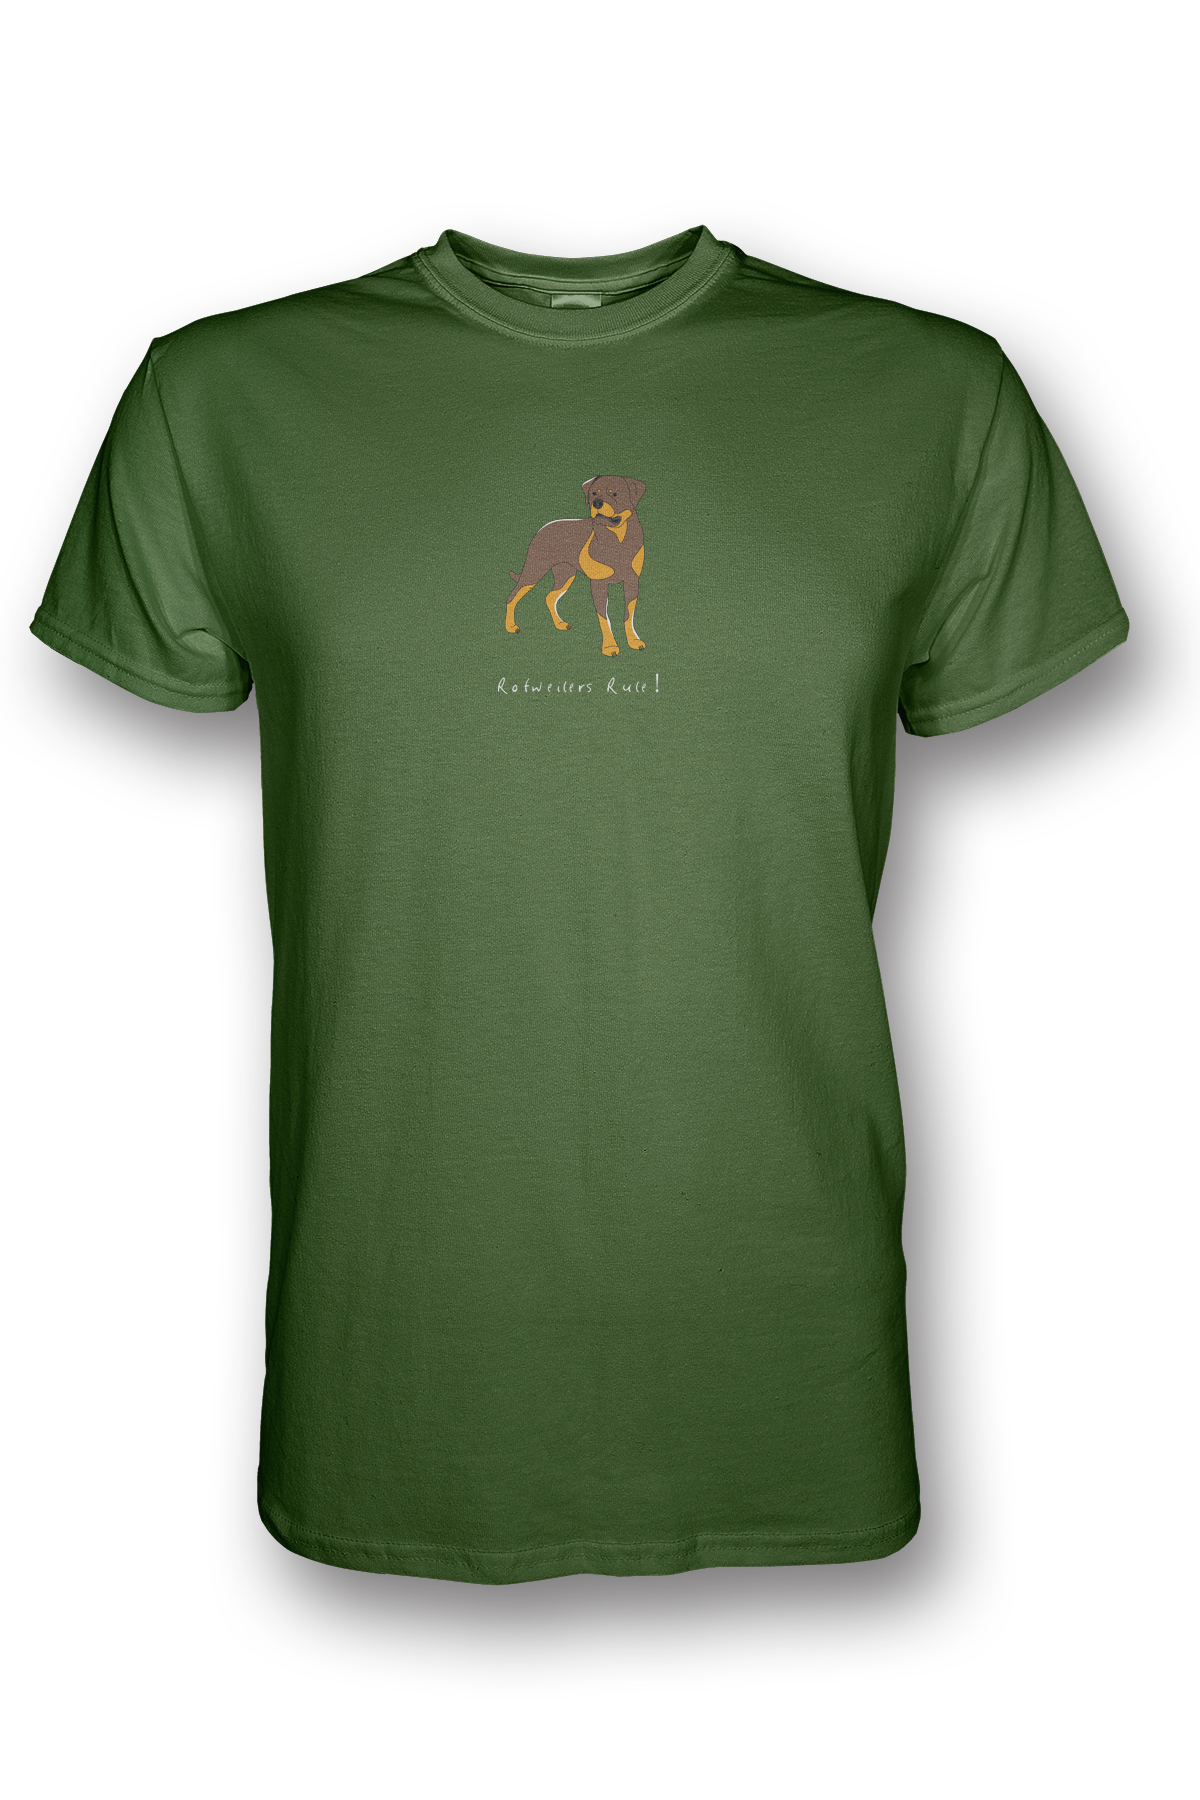 Mens Crew Neck T-Shirt - Rotweilers Rule! Apple Green